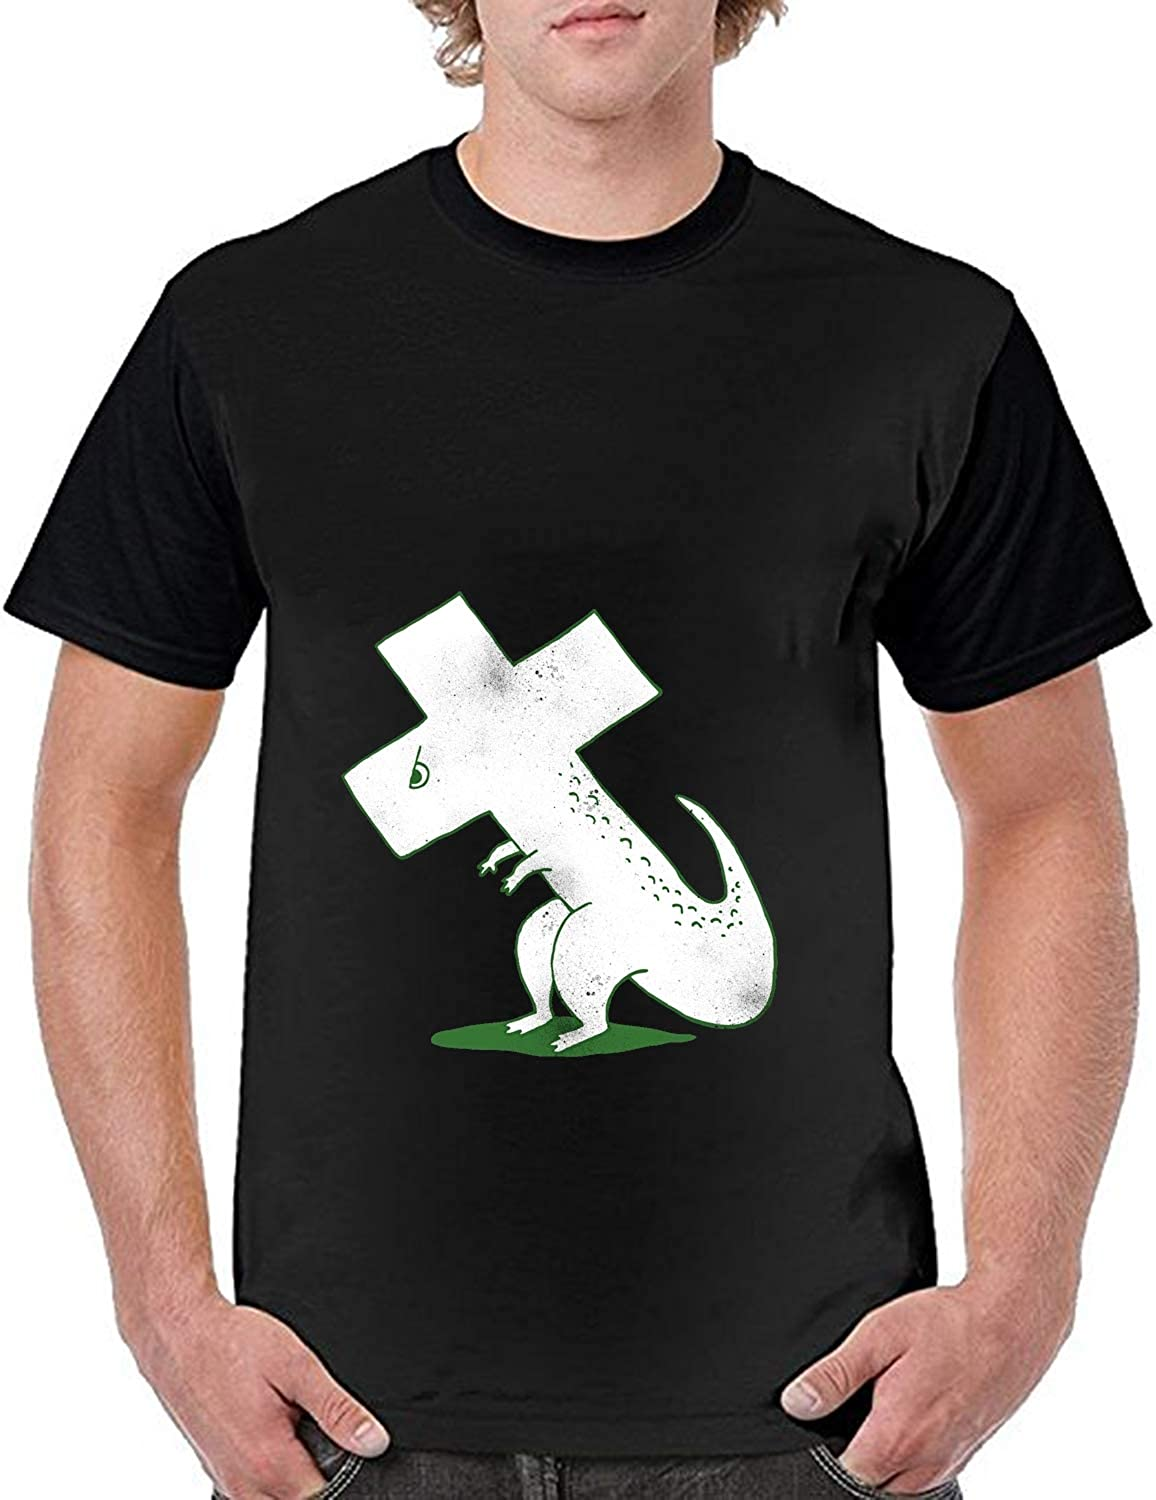 SWEETSTO Mens Causal Ready for Aliens T-Shirt Graphic T Shirts